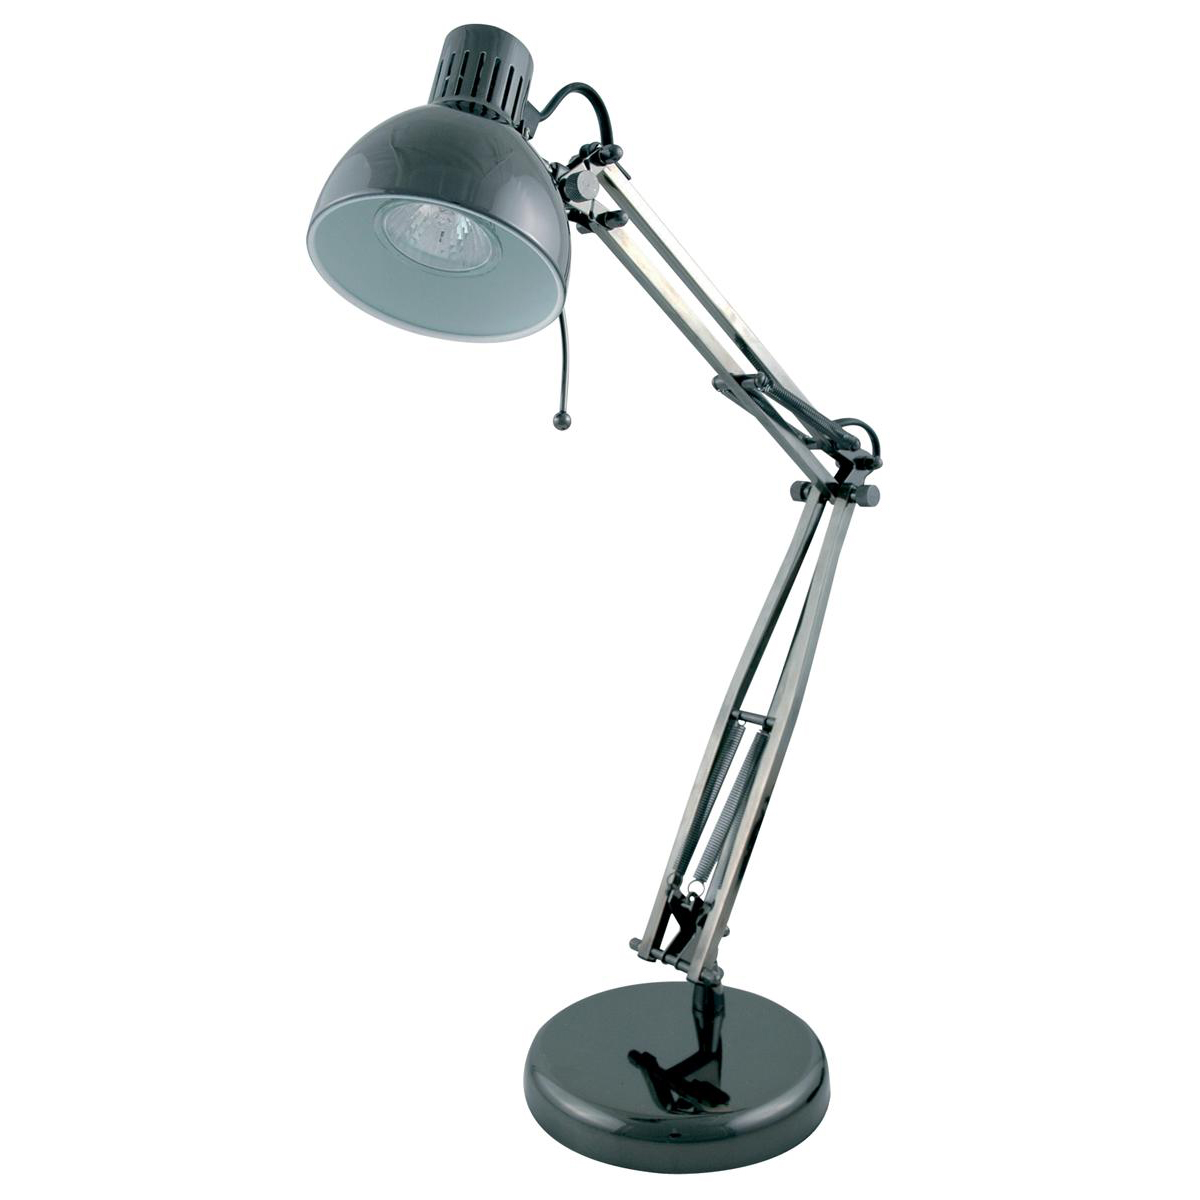 Poise Desk Lamp with Adjustable Arm 35W Max Height of 540mm Base 155x155x35mm Black